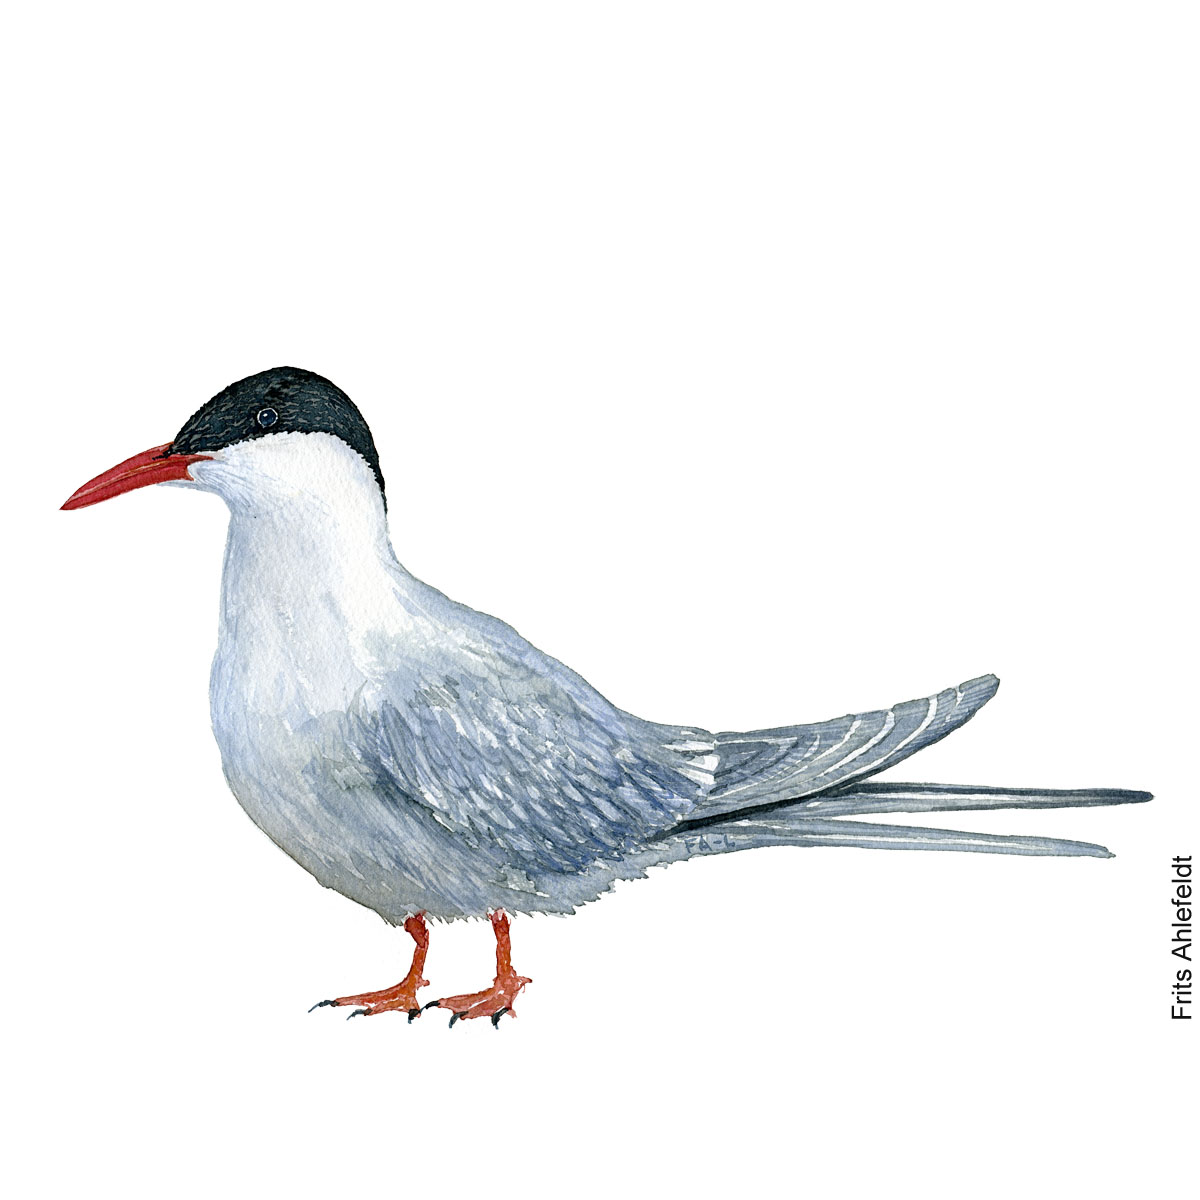 Arctic tern. Bird watercolor illustration handmade by Frits Ahlefeldt